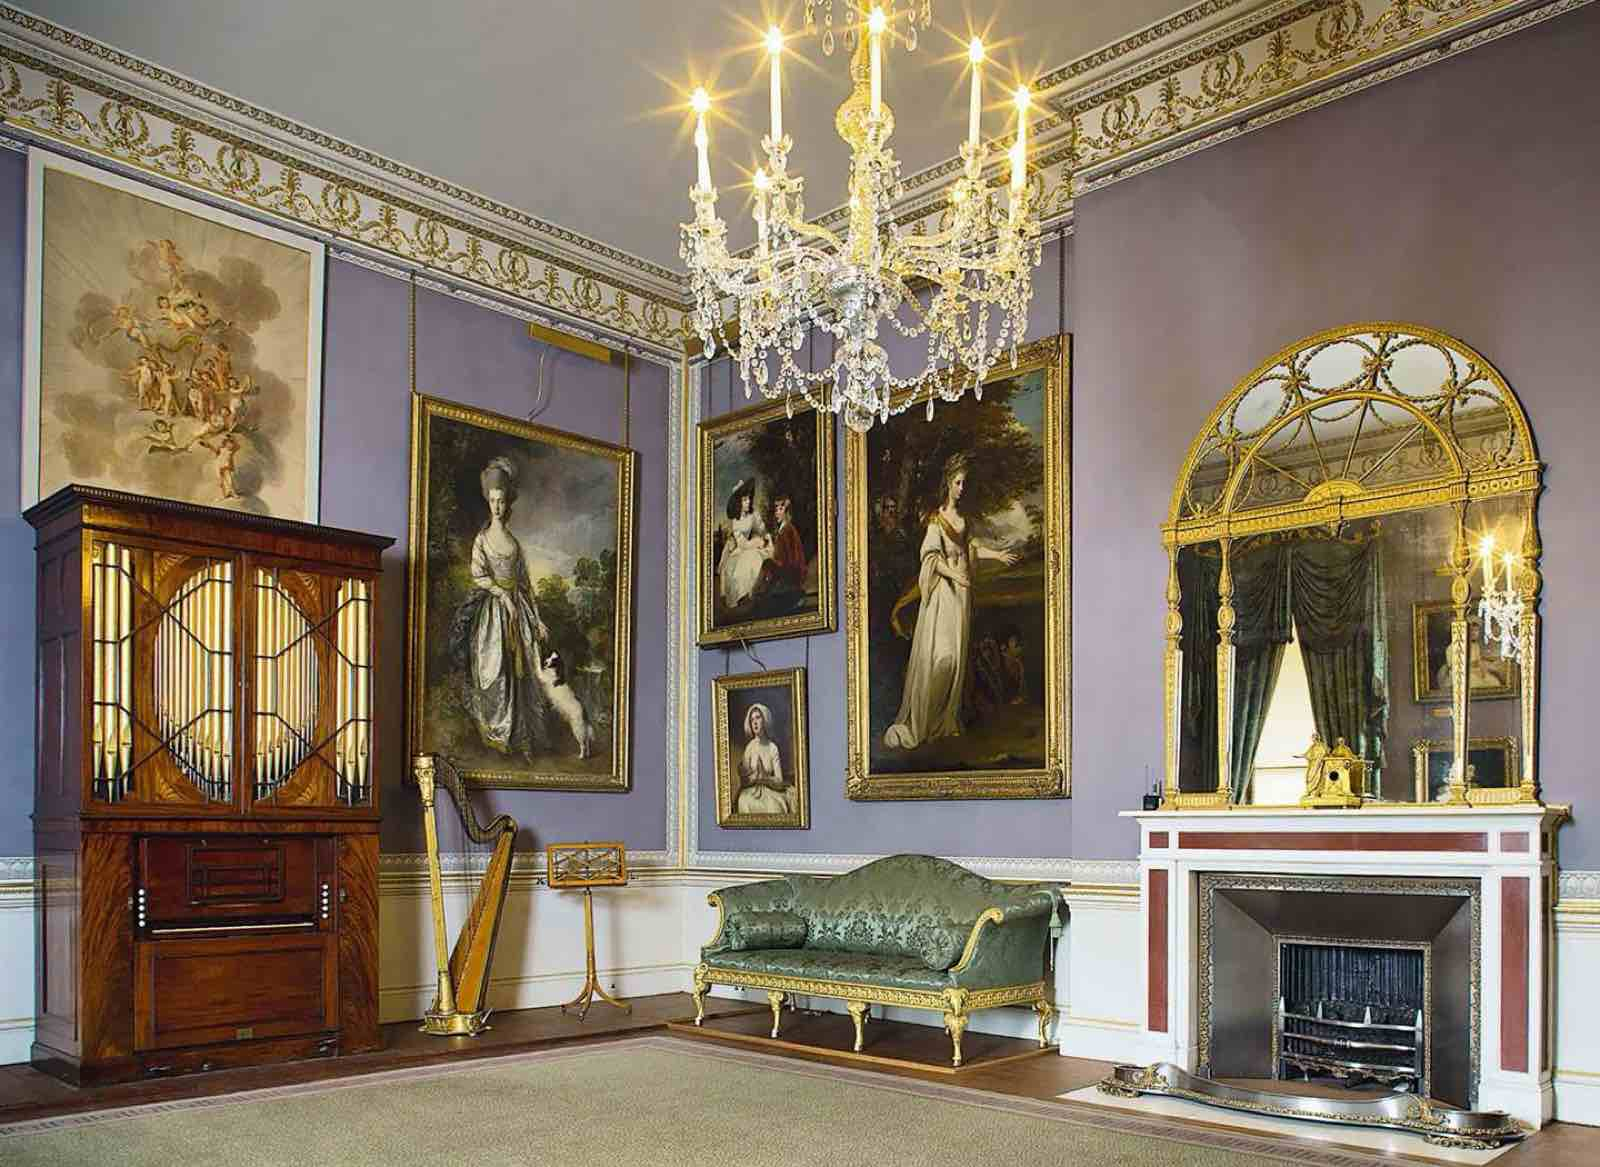 The Music Room at Kenwood House